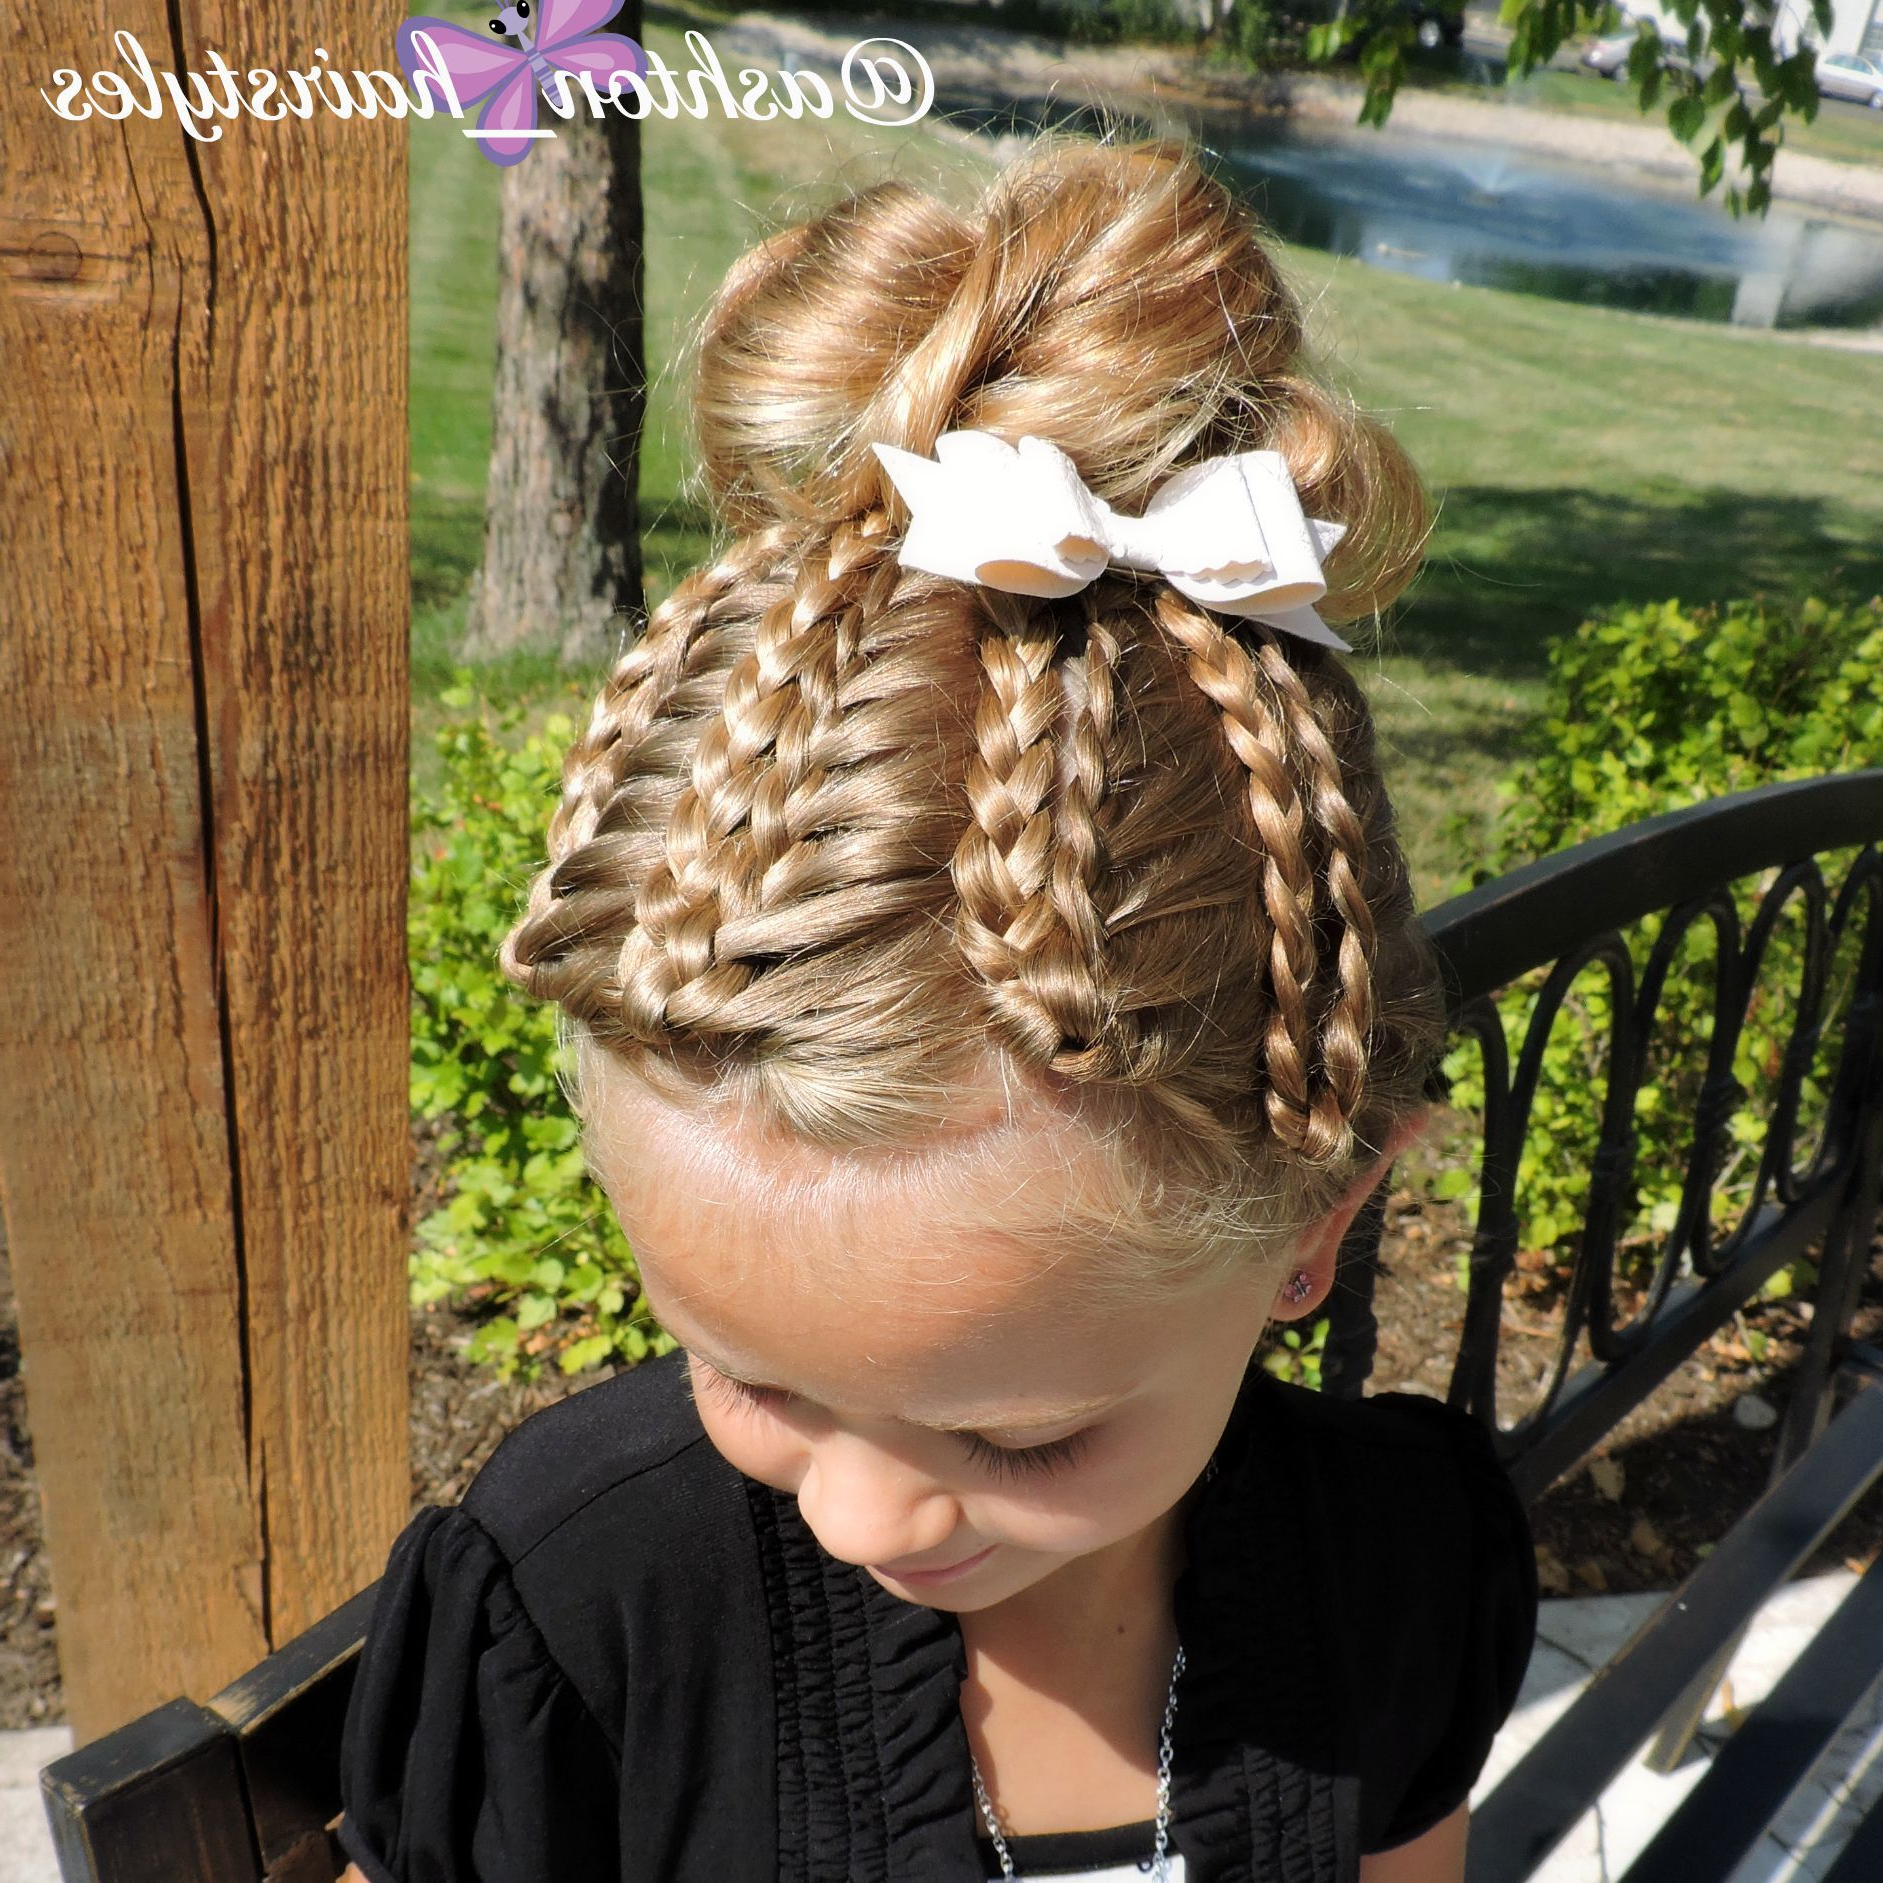 Most Popular Folded Braided Updo Hairstyles Within We Folded Back The Braids In The Front Of Her Messy Bun (View 8 of 20)